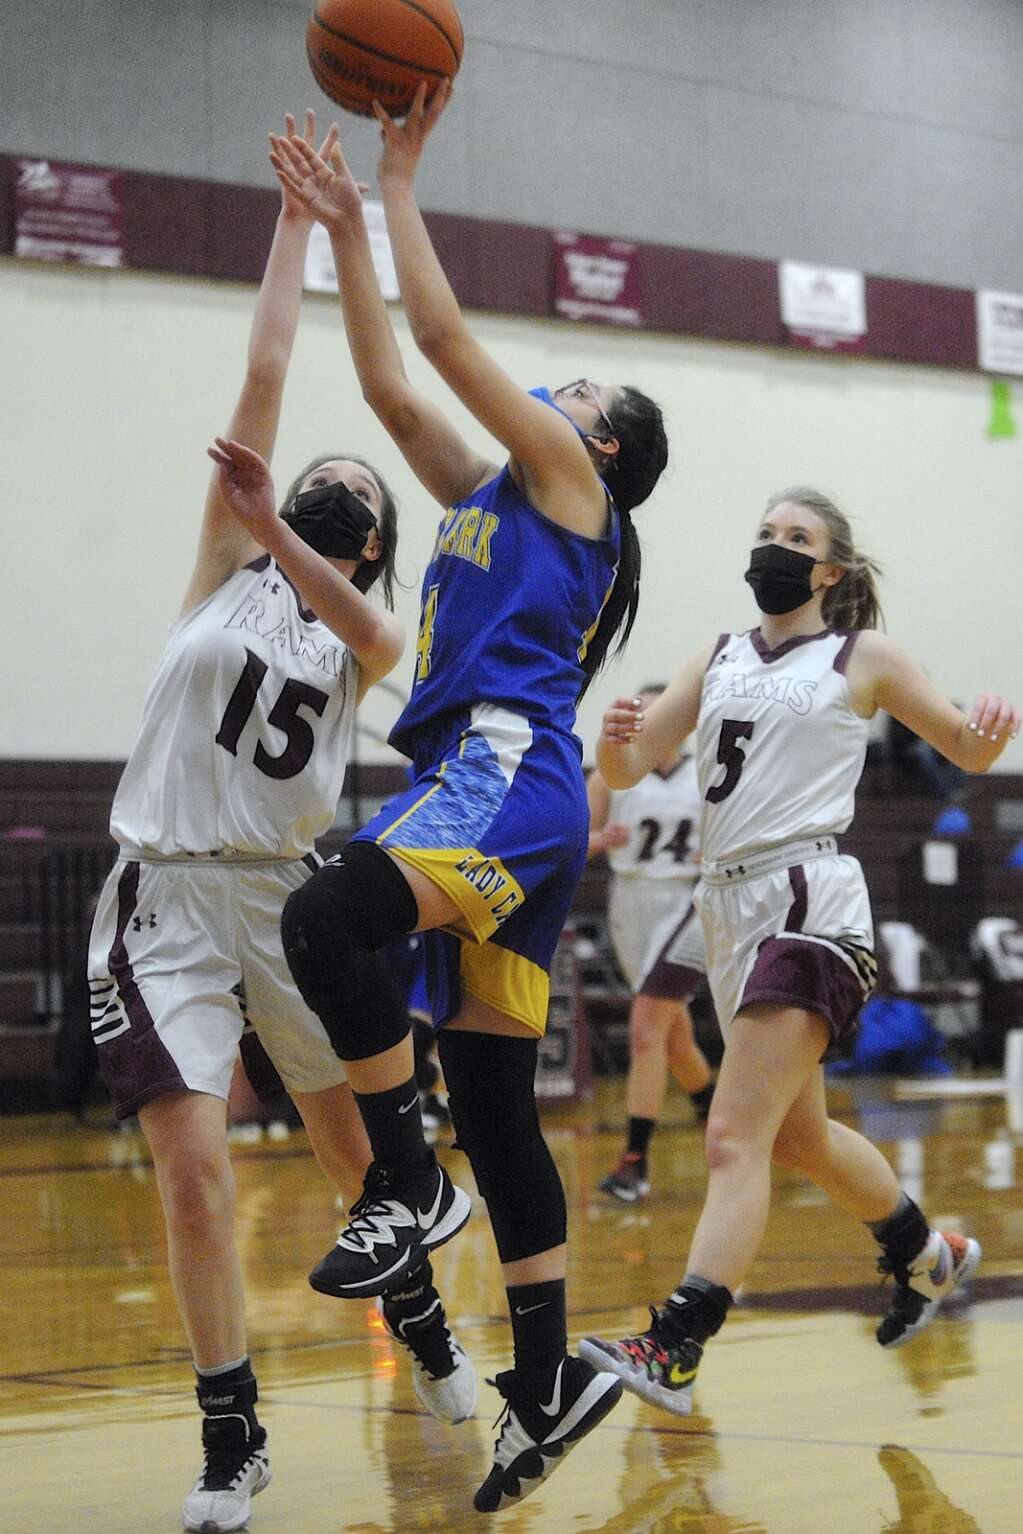 Soroco senior Makinley Parker defends a shot from North Park junior Danela Reyes during a game in Oak Creek on Saturday afternoon. (Photo by Shelby Reardon)